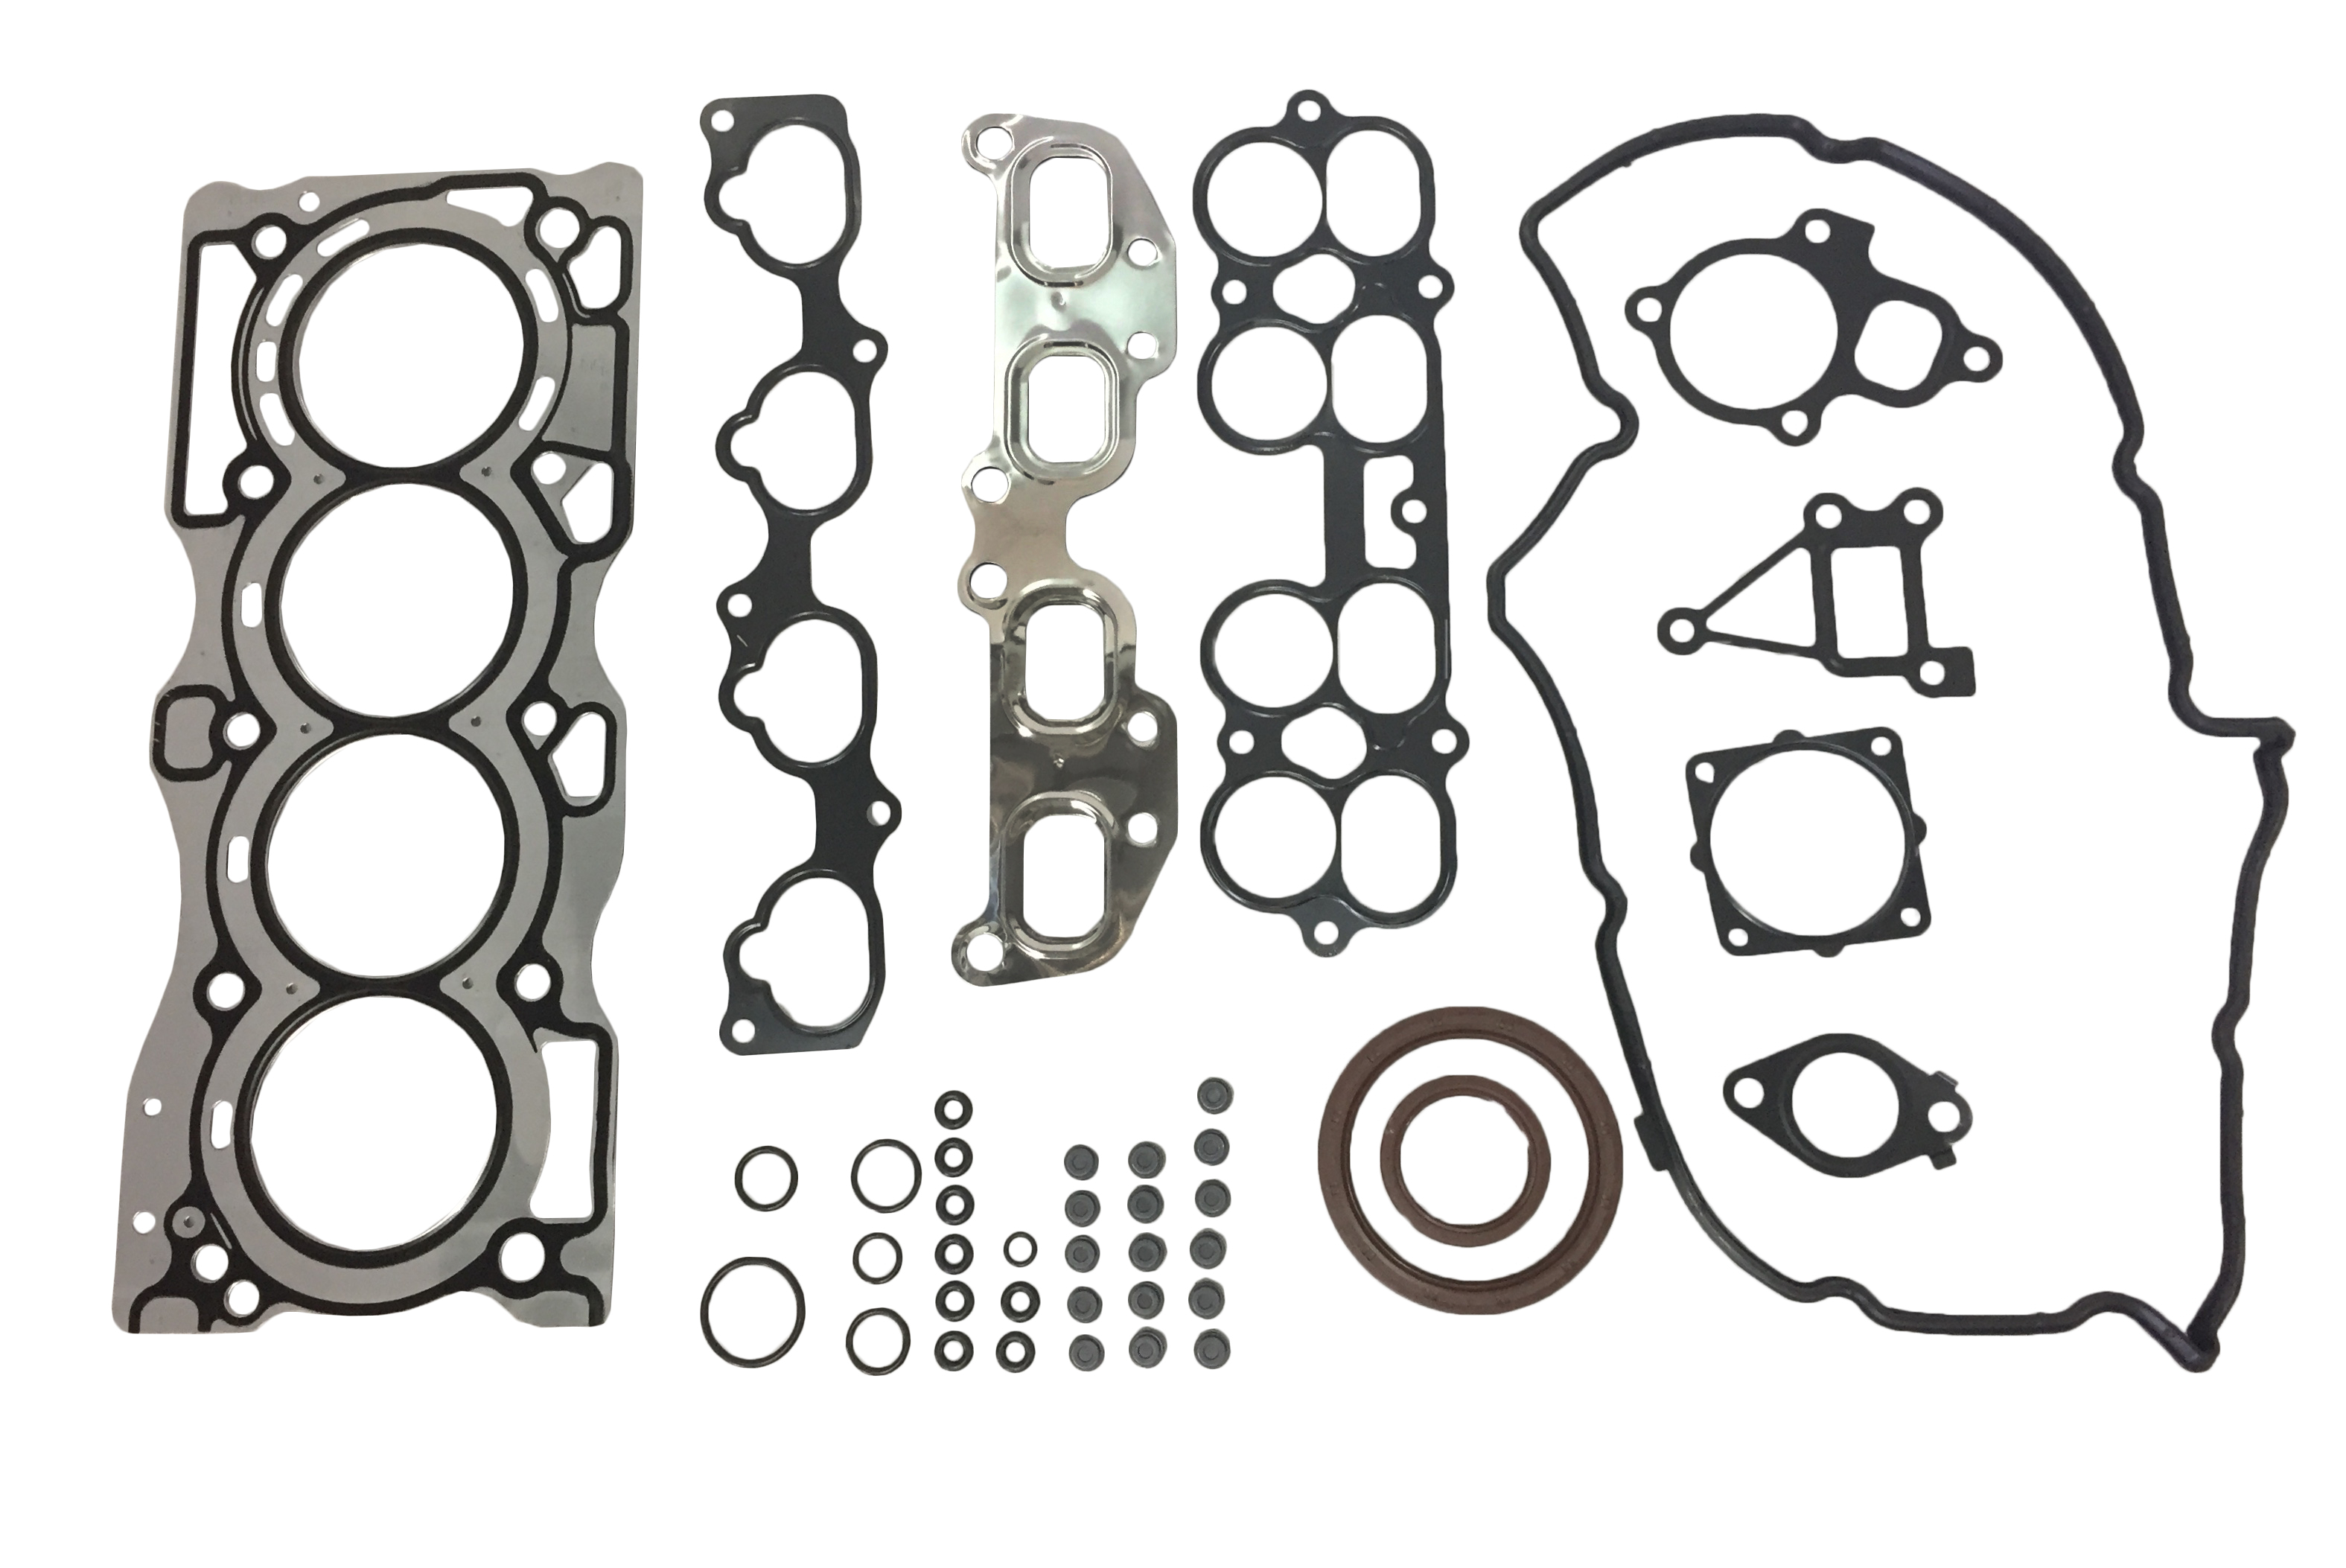 Gasket set cylinder head gasket Nissan X-Trail T30 NEW DE275545